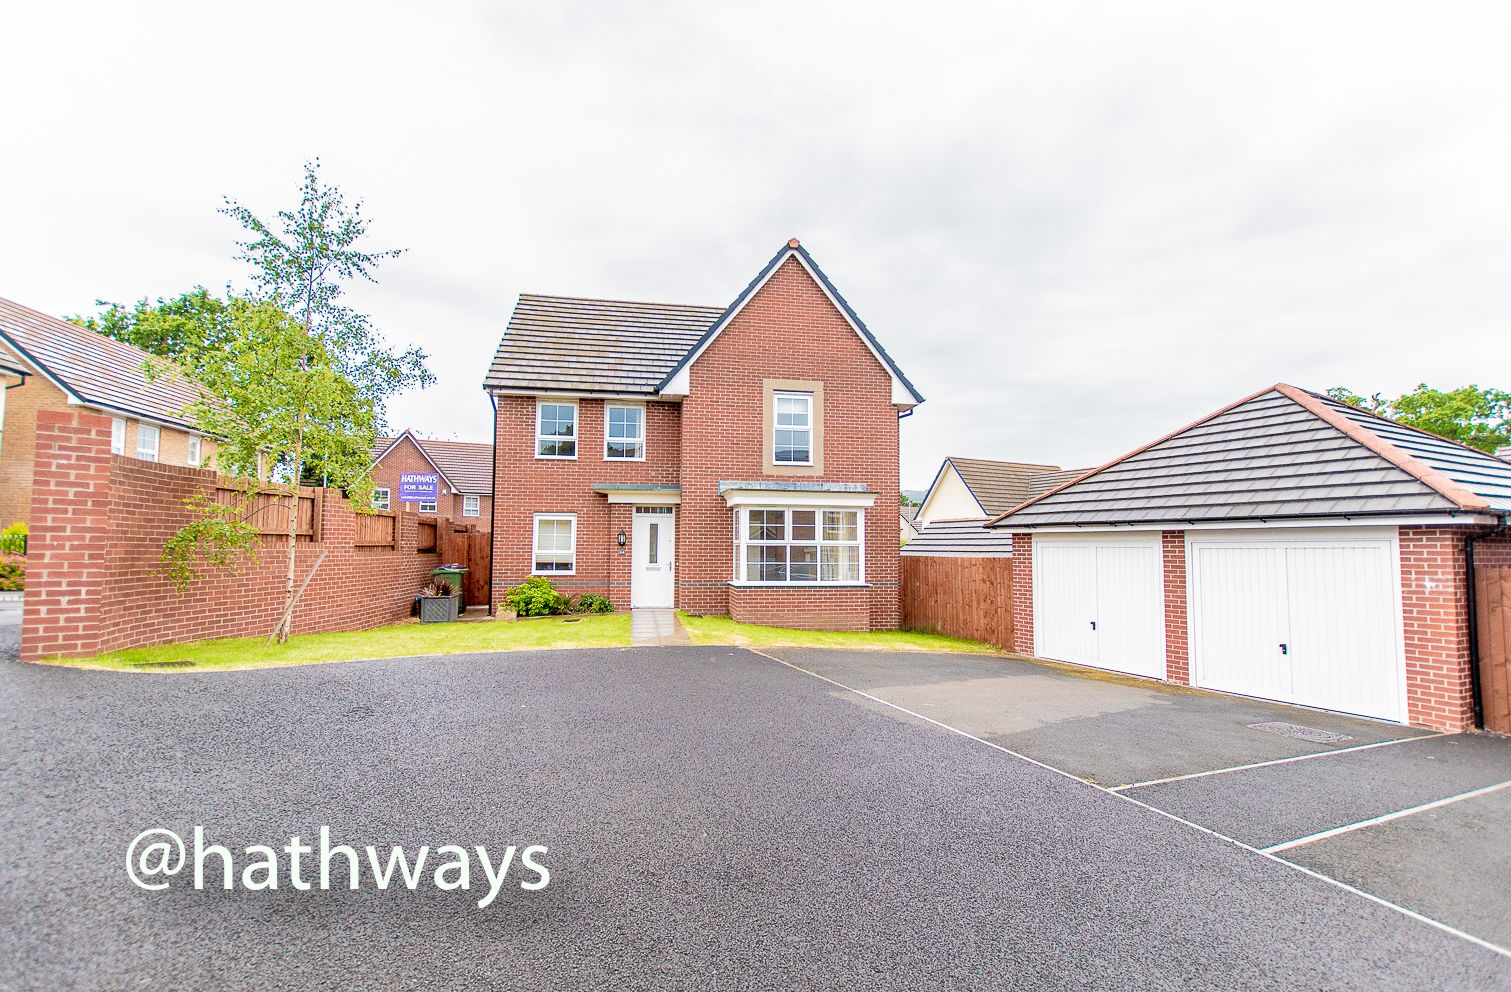 4 bed house for sale in Chapel Walk - Property Image 1